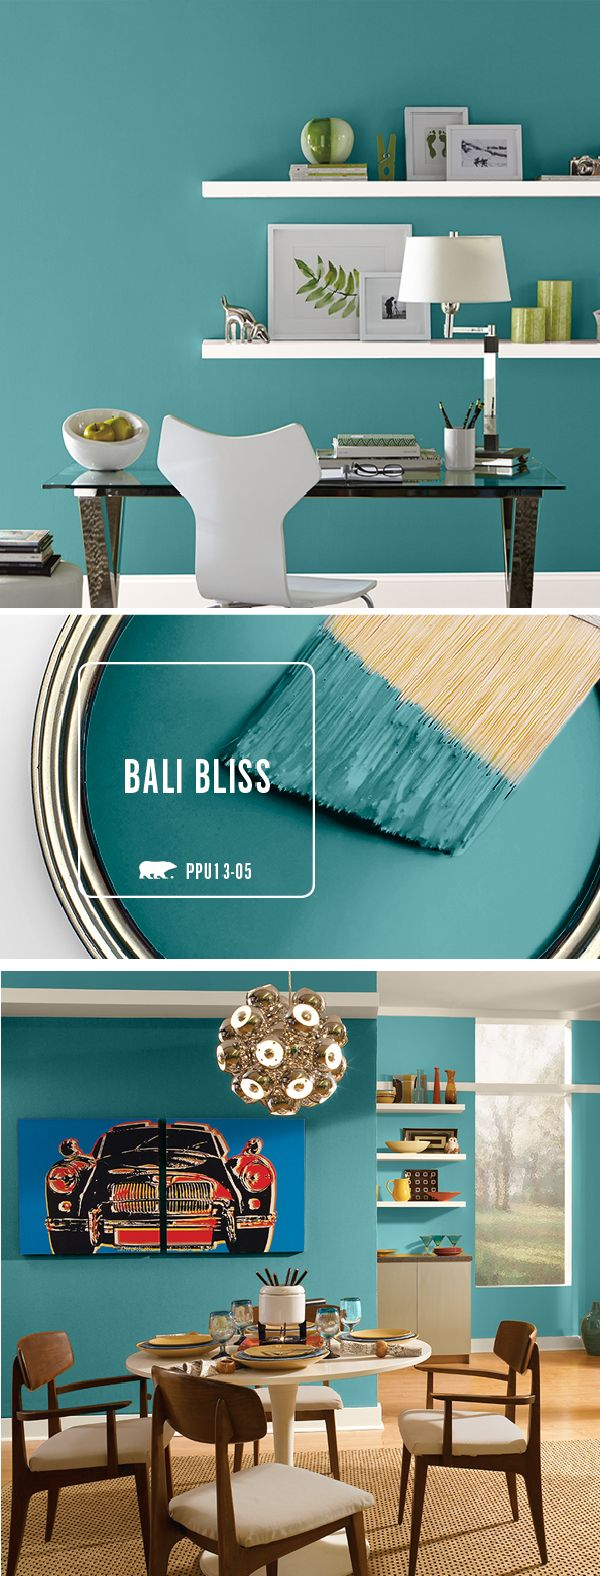 Combine ocean hues with modern decor and you get this relaxing blend of  style and charm